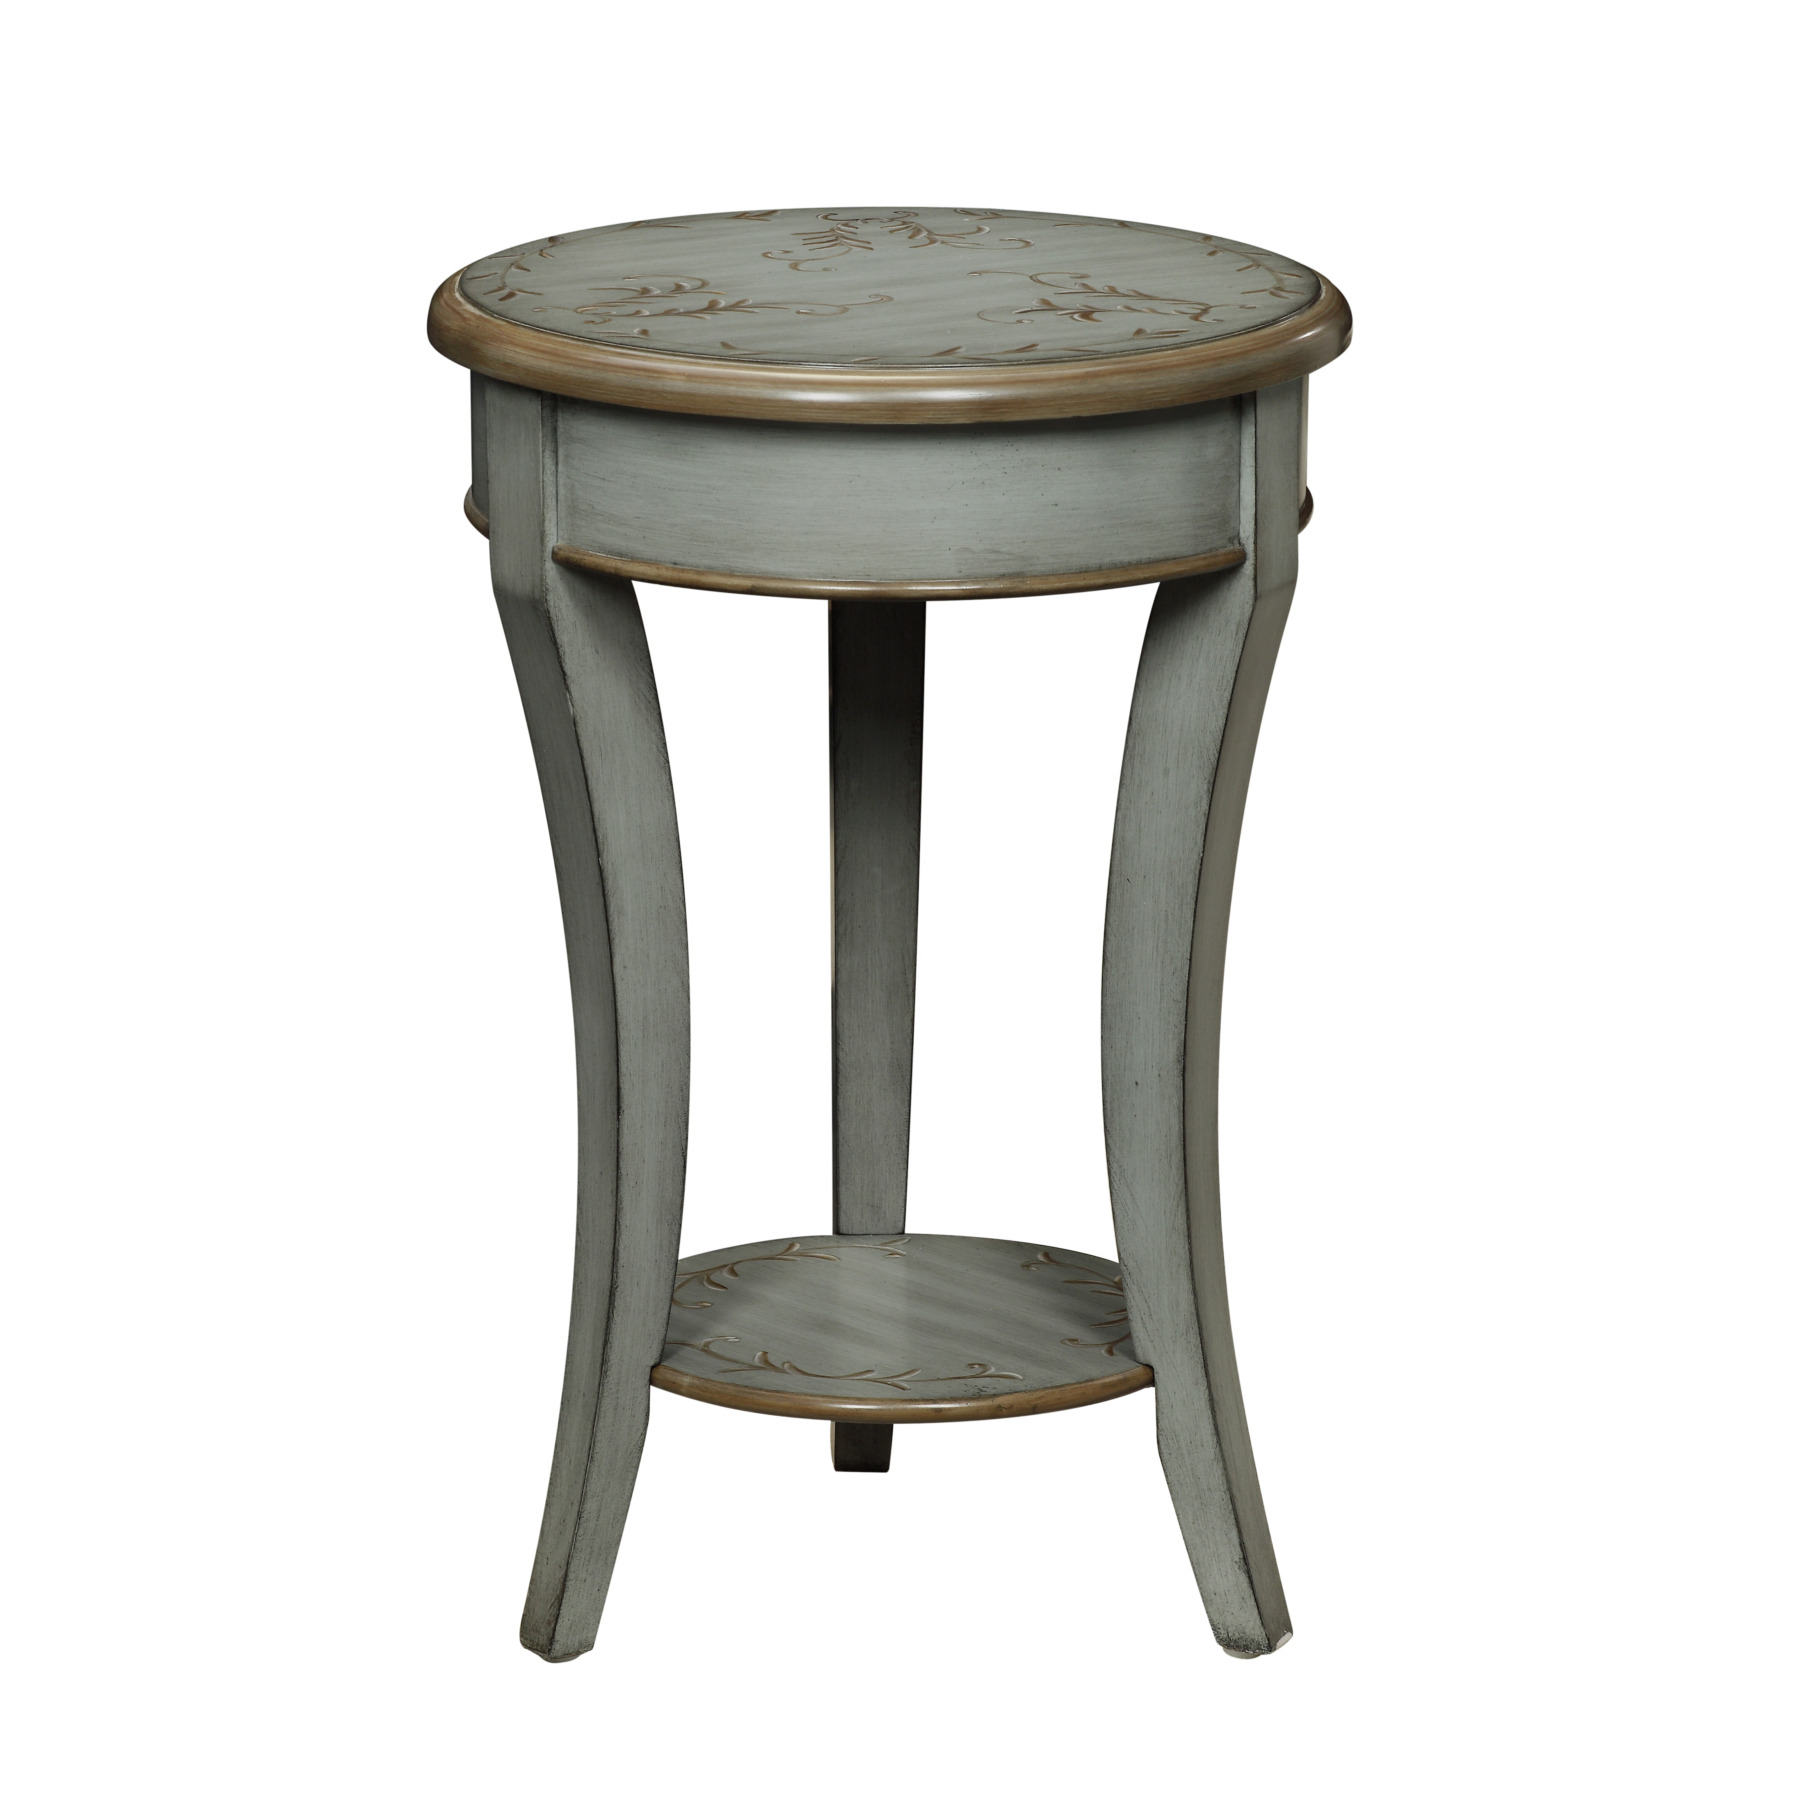 bolanburg weathered gray rectangular end table from ashley mirrored michael anthony furniture floral top greygreen round threshold accent marble coffee with matching side tables